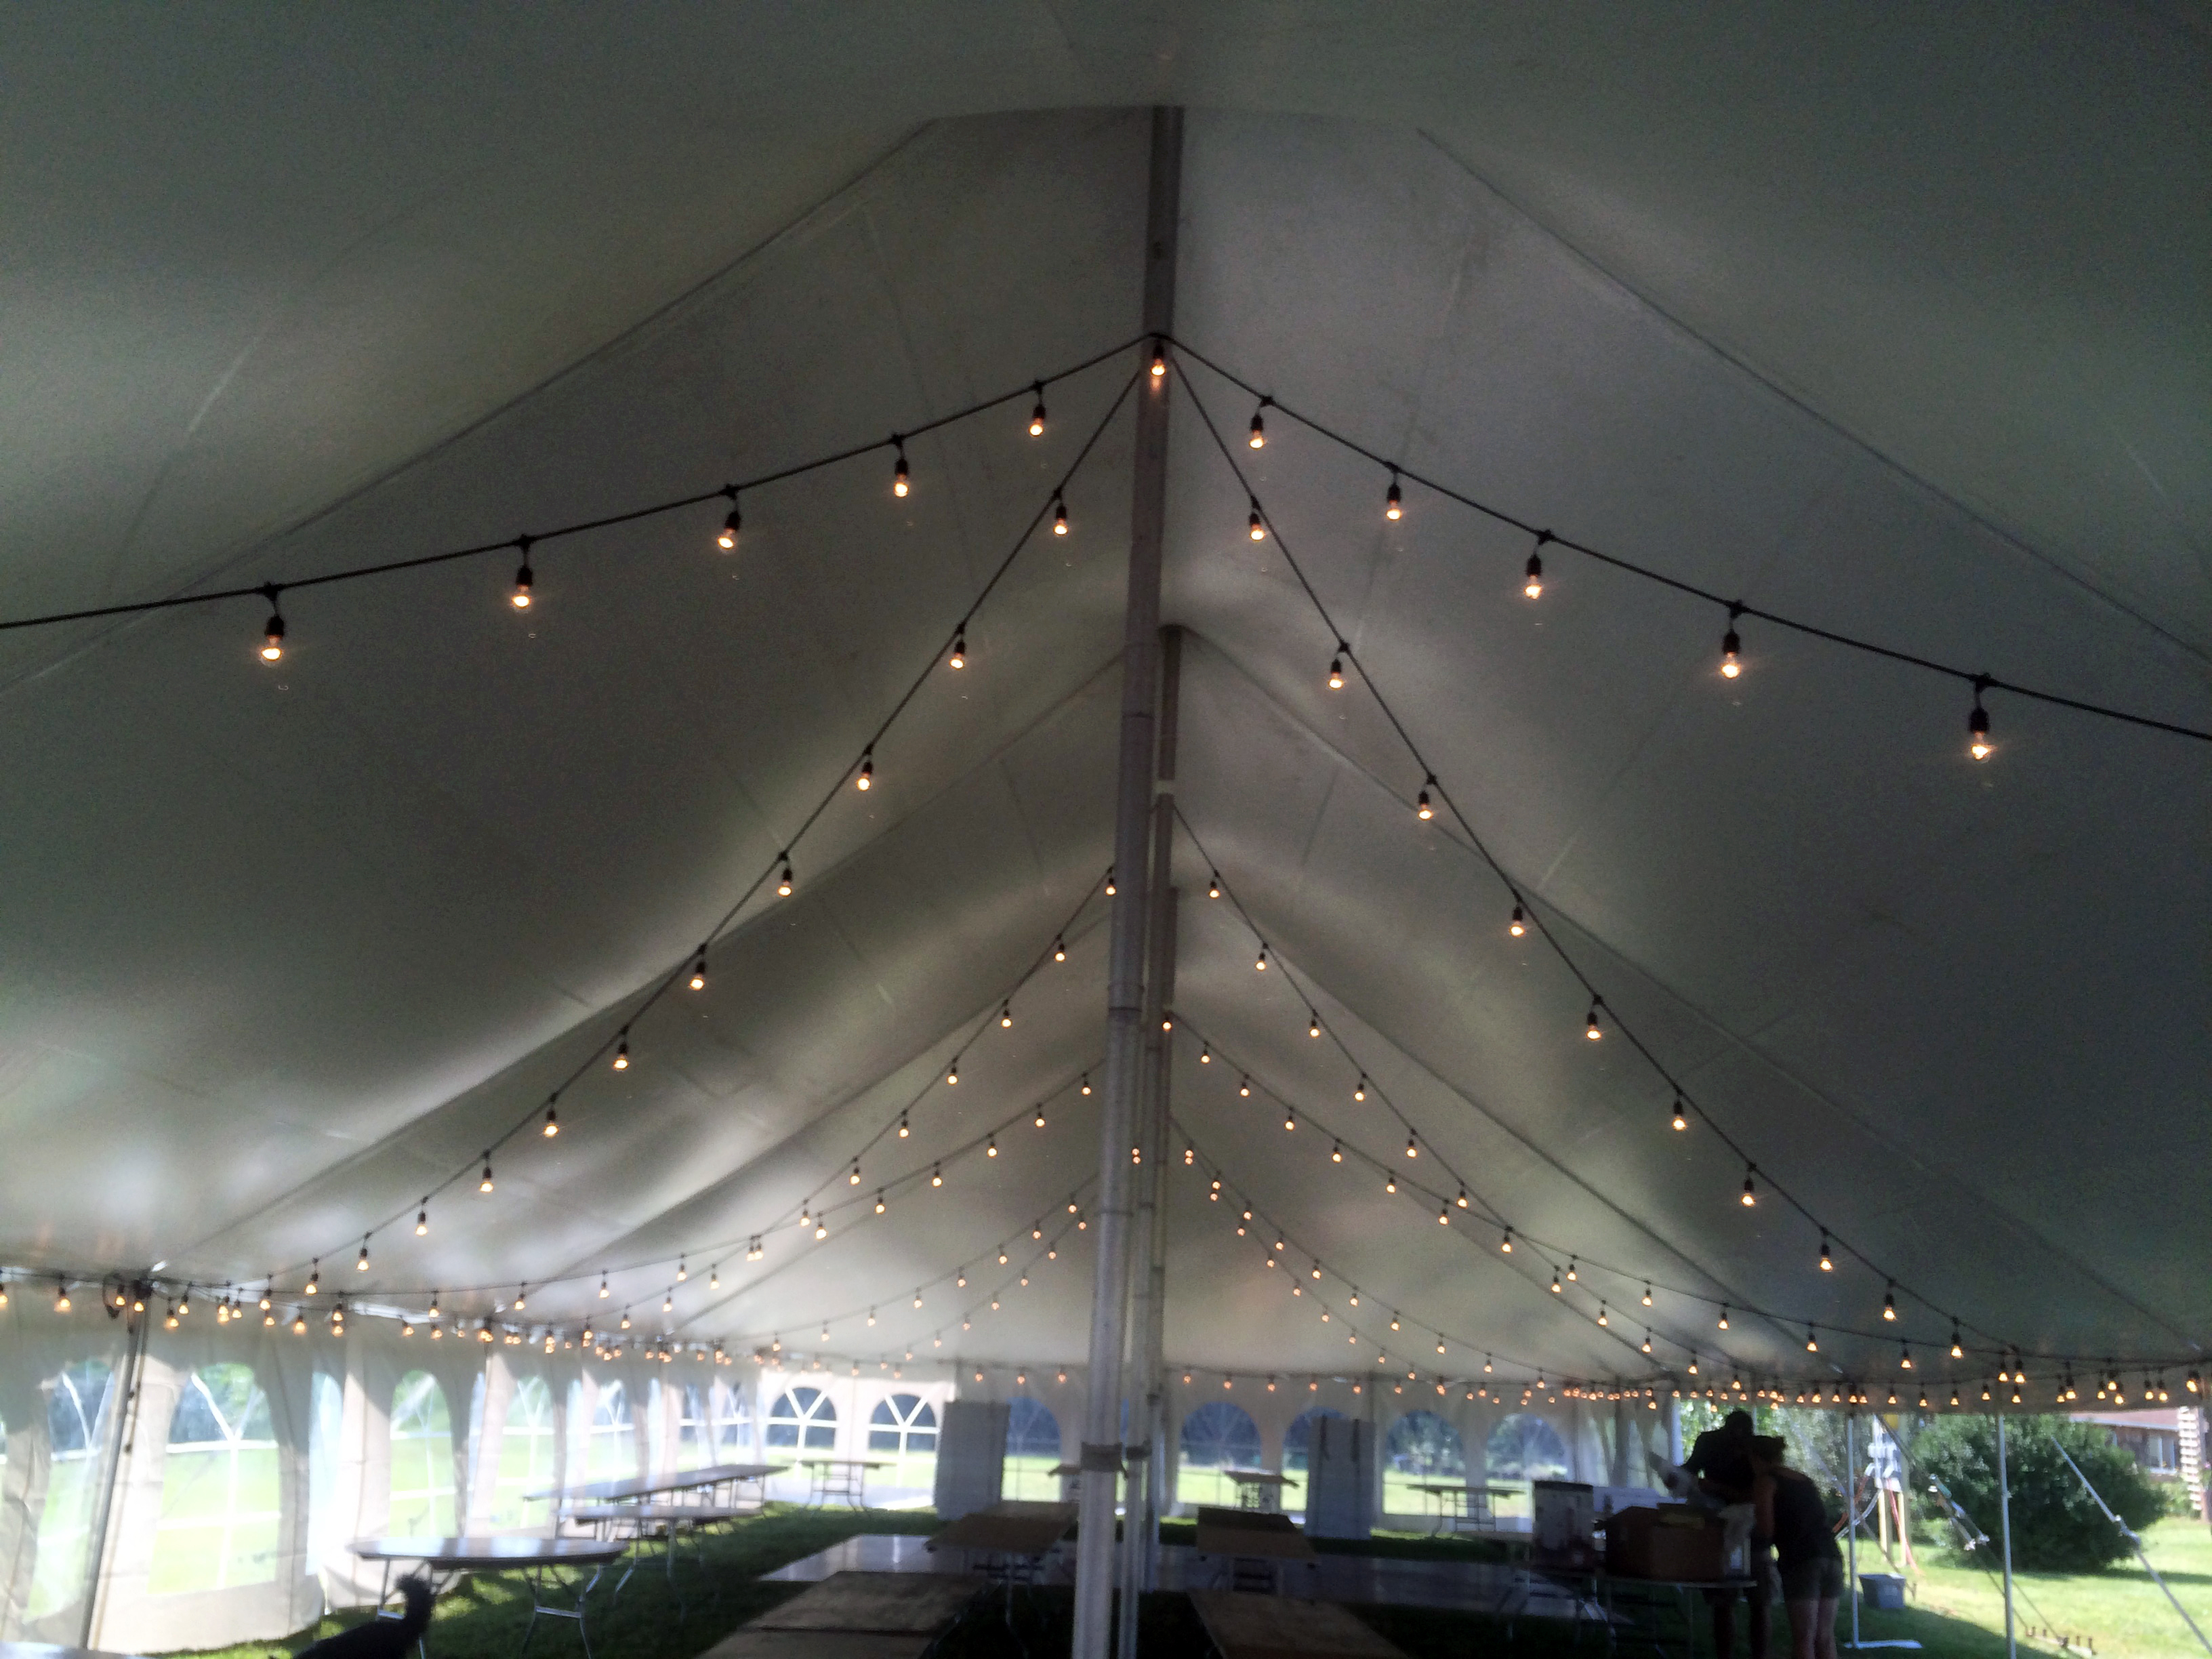 Wedding reception tent for 160 guests dance flooring